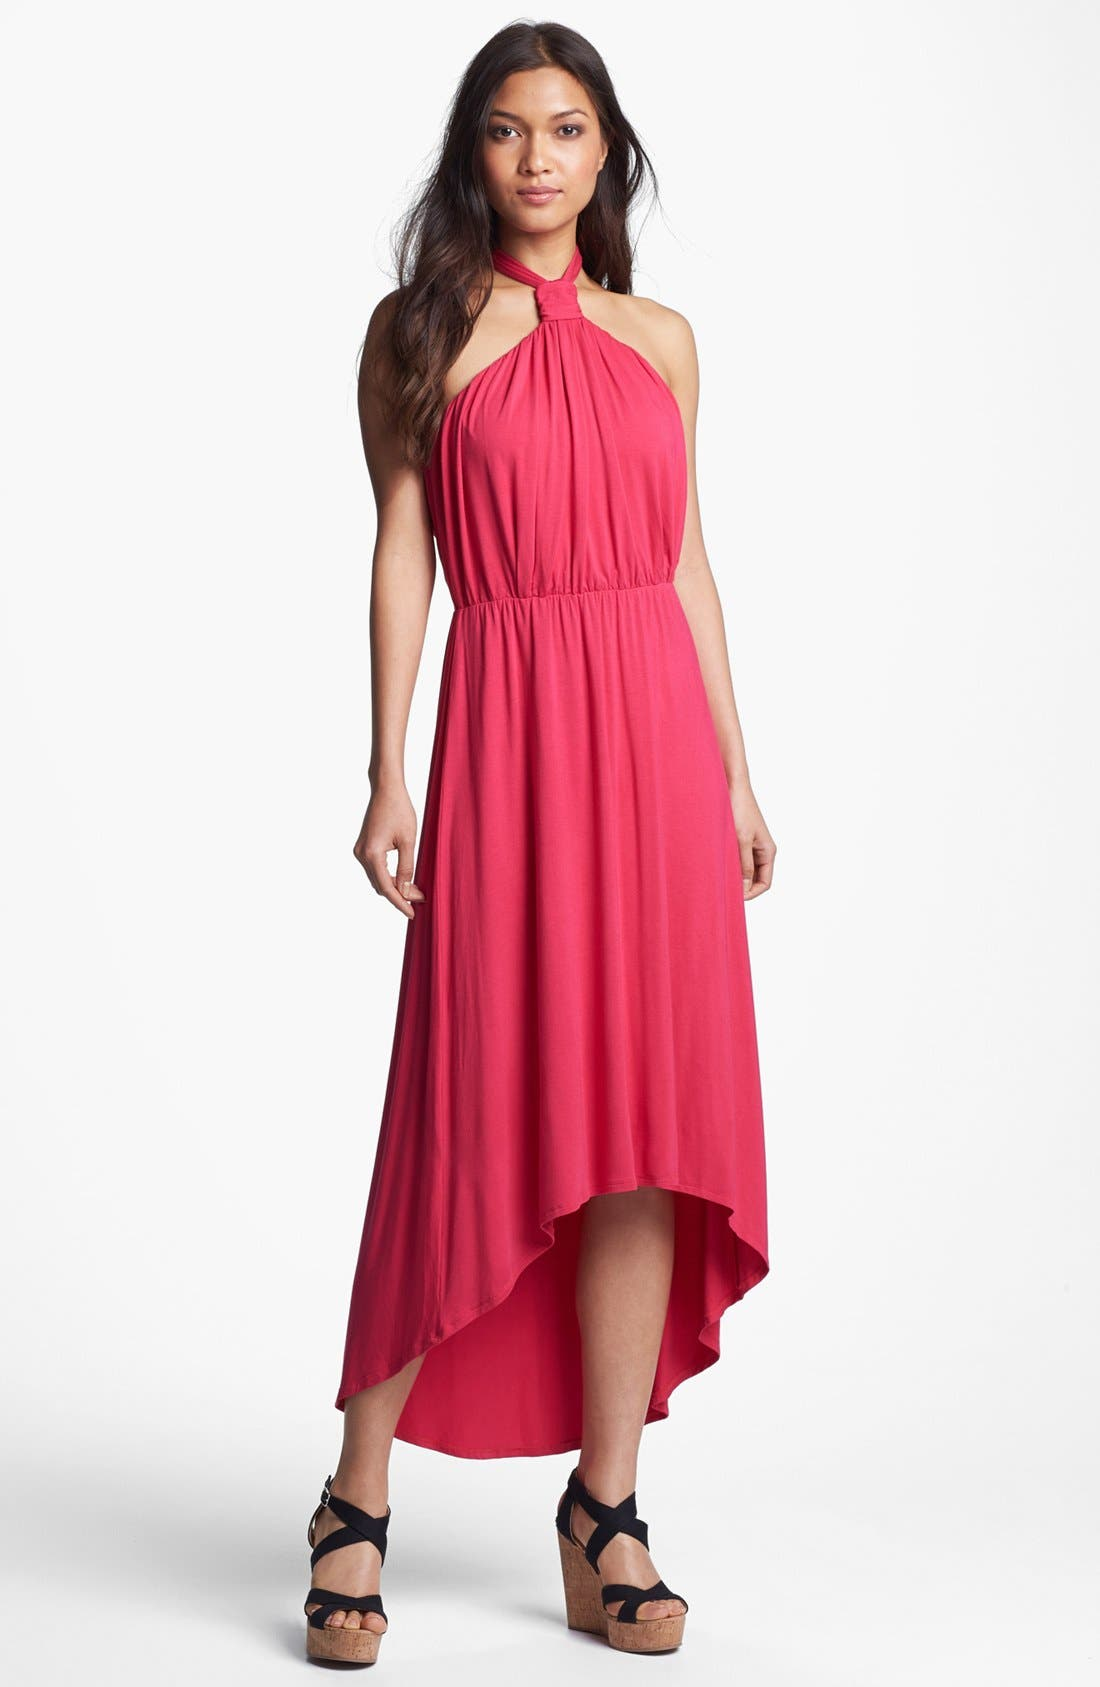 Main Image - Felicity & Coco Halter High/Low Maxi Dress (Regular & Petite) (Nordstrom Exclusive)